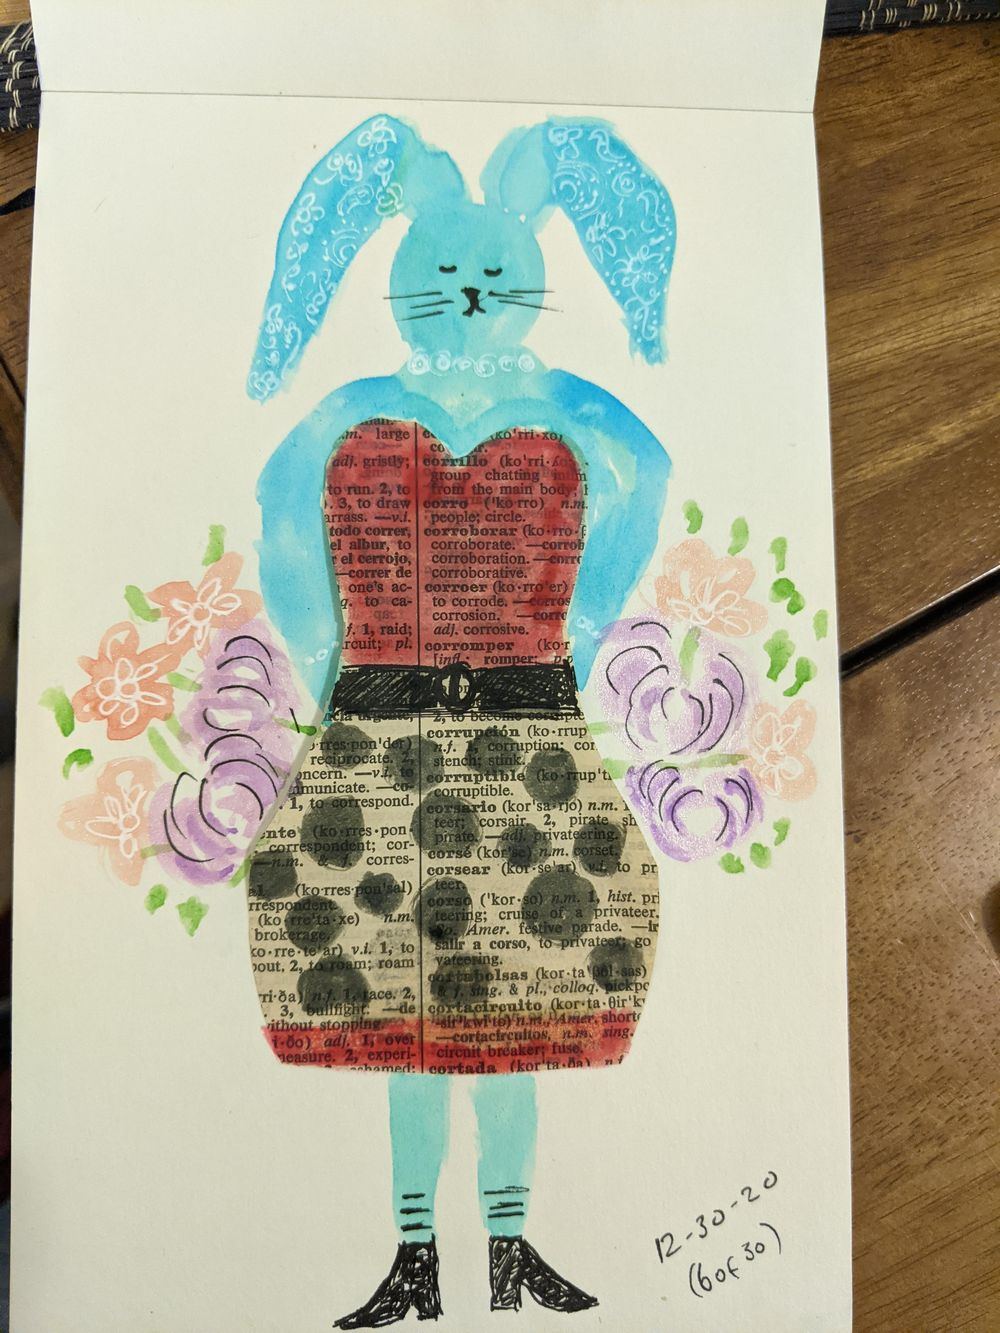 1 of a 30 day creativity release - Finding my style - image 5 - student project